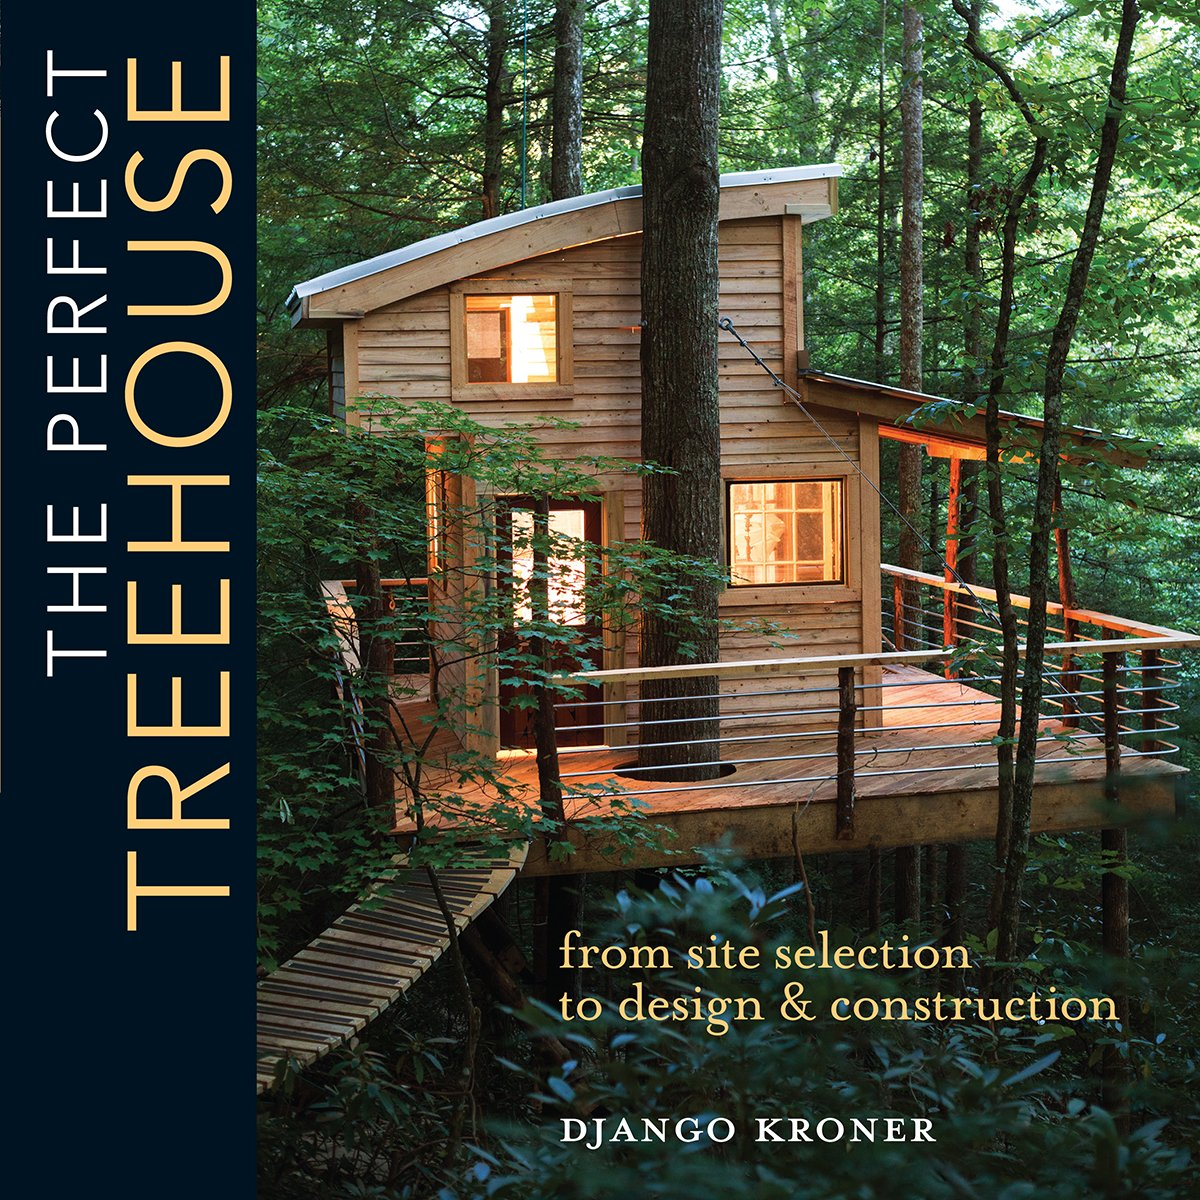 The Perfect Treehouse: From Site Selection to Design & Construction on florida house construction, tree houses for adults, tree homes for rent in virginia, tree houses to live in, treehouse platform construction, fire house construction, owl house construction, santa house construction, green house construction, tree flooring, ocean house construction, art house construction, tent construction, rock wall construction, light house construction, love house construction, grass house construction, mountain house construction, squirrel house construction, deck construction,